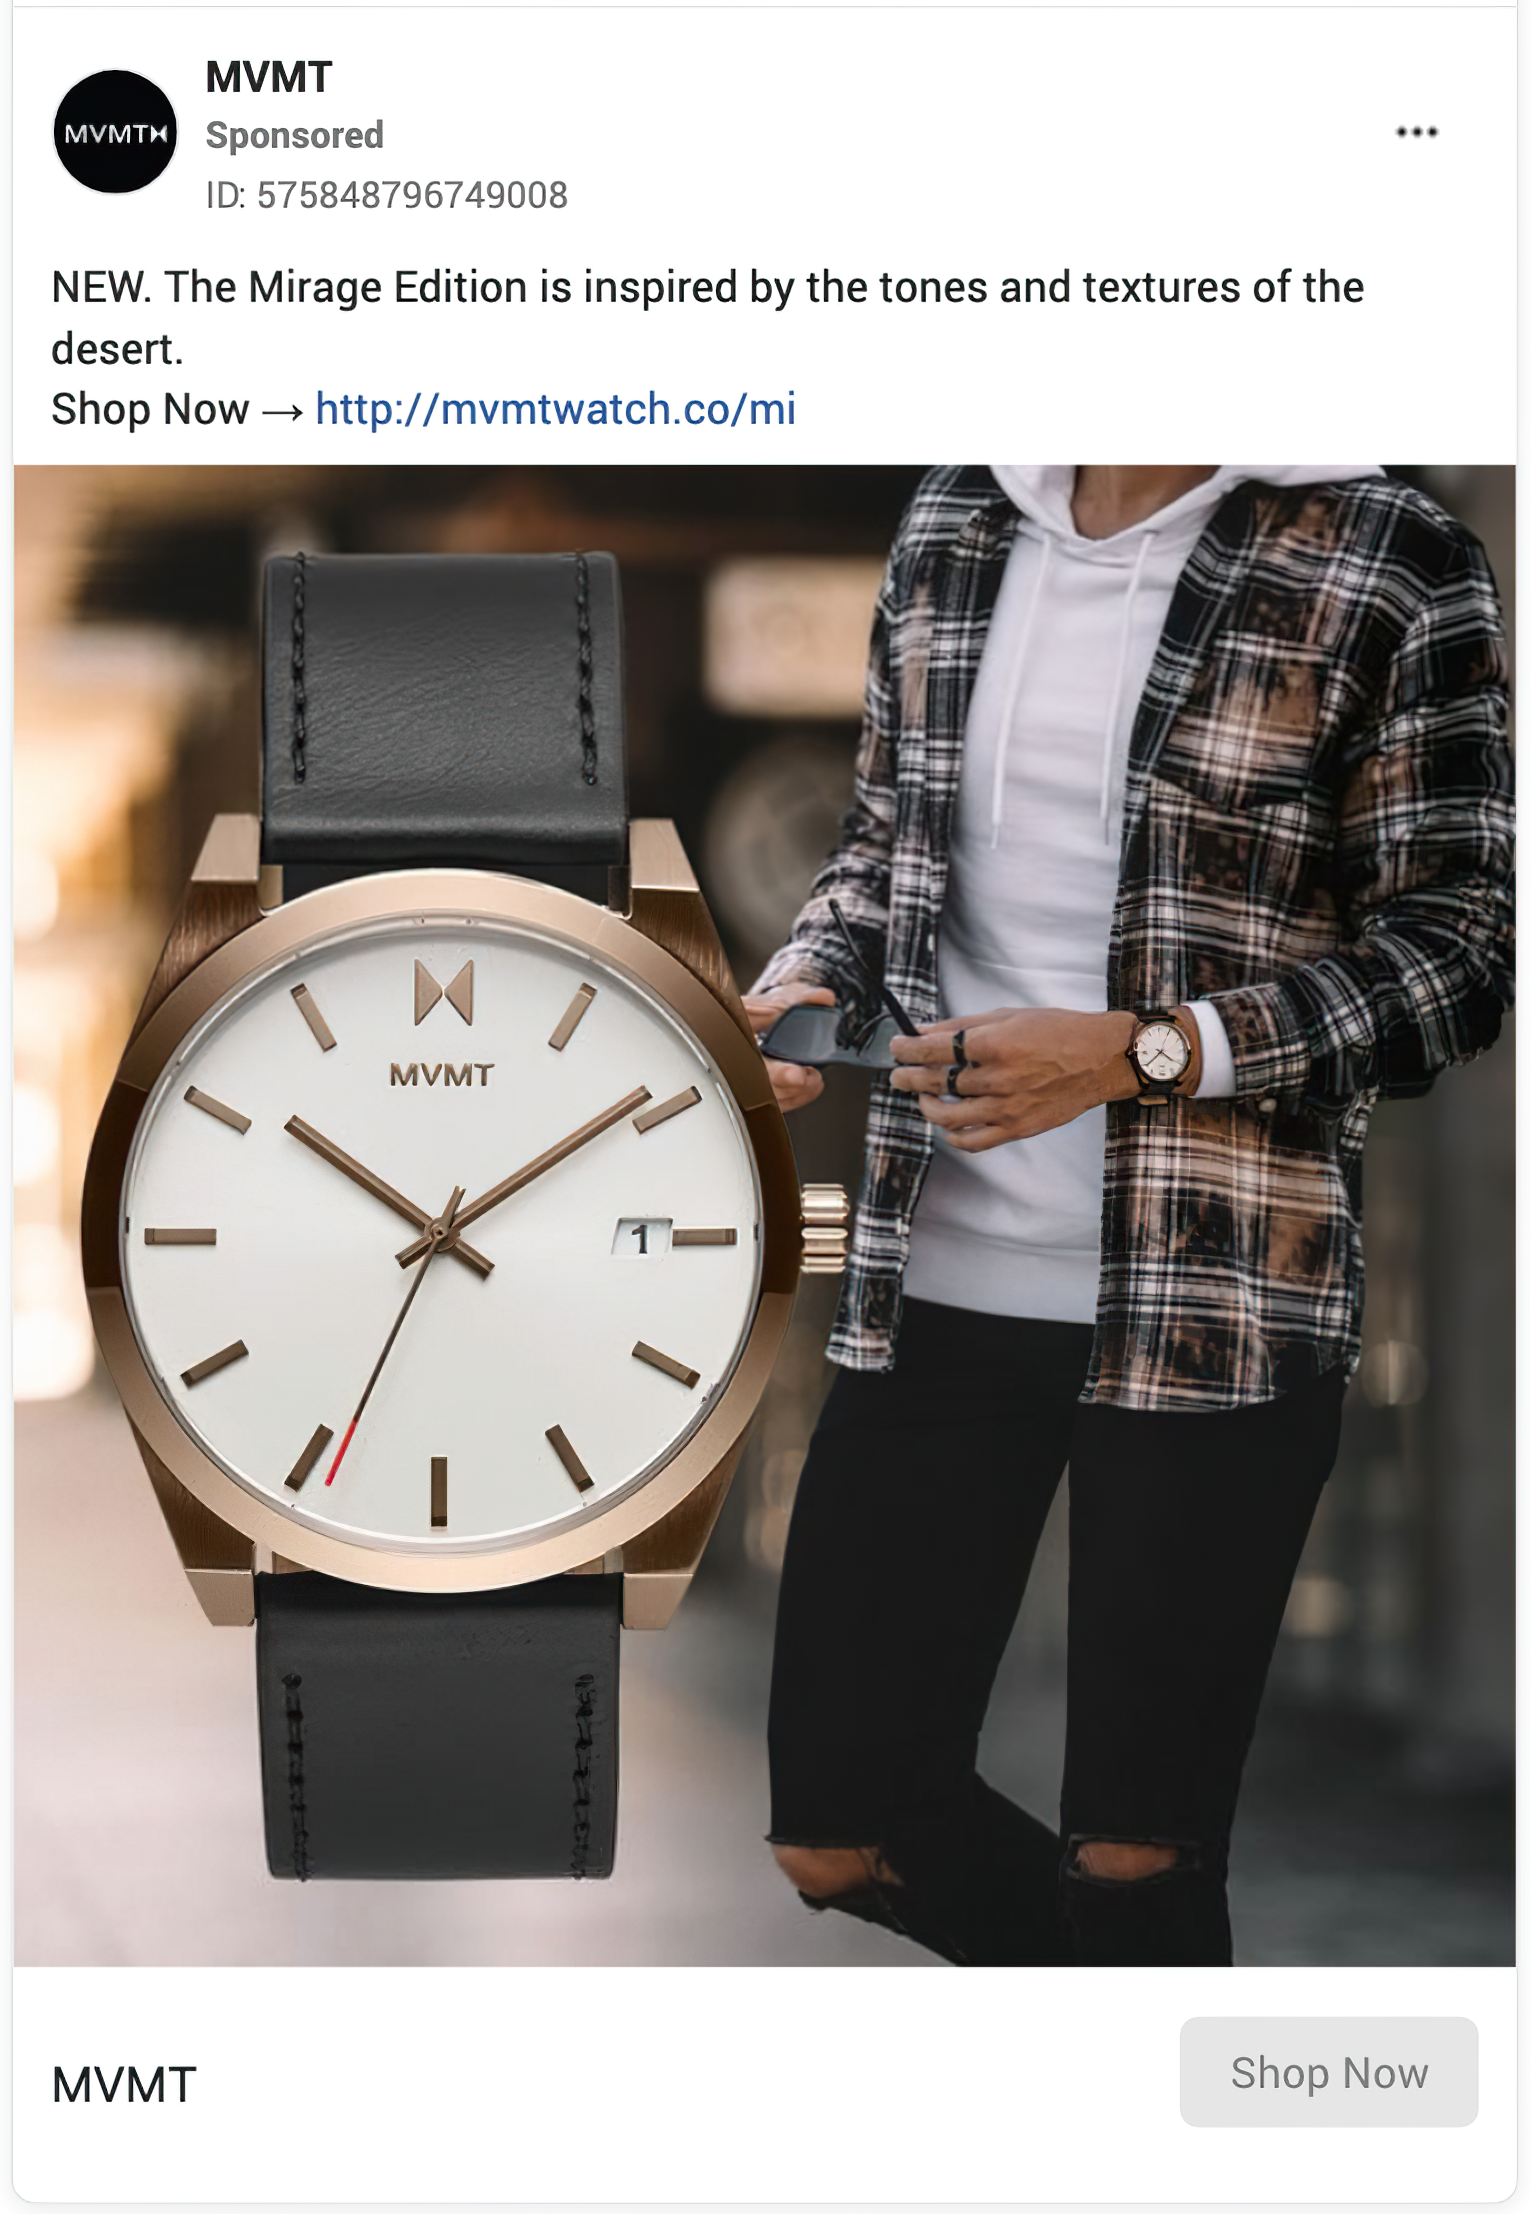 Image of Watch Ad